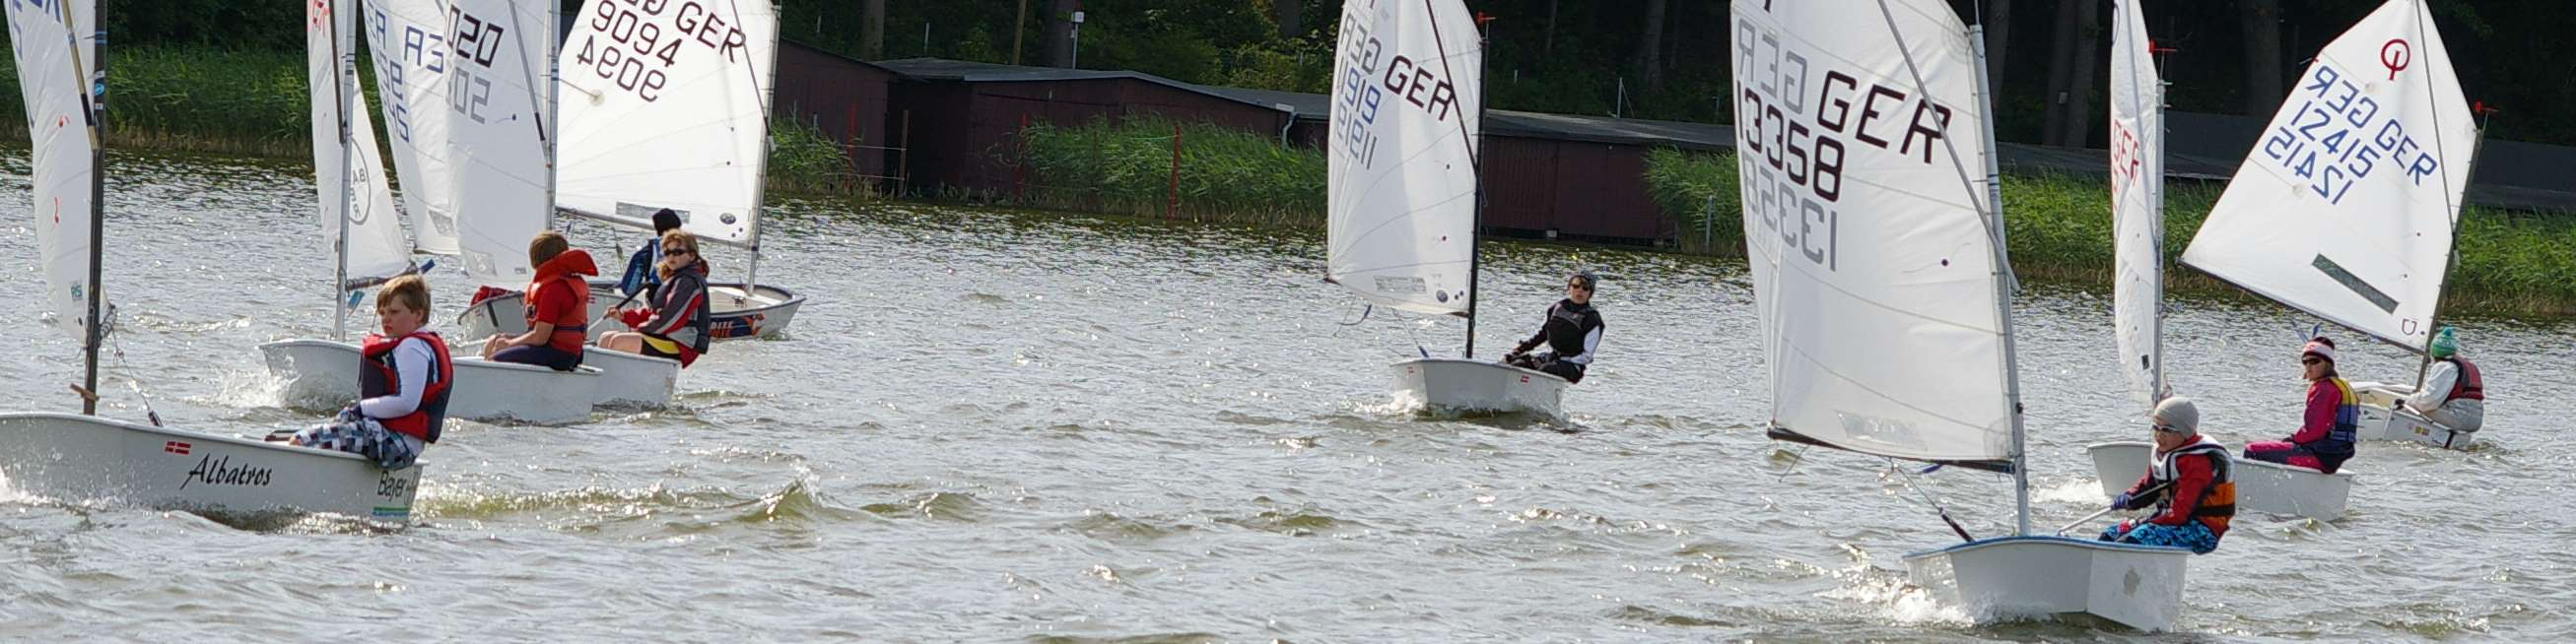 Optimistenfeld bei der Jugendregatta